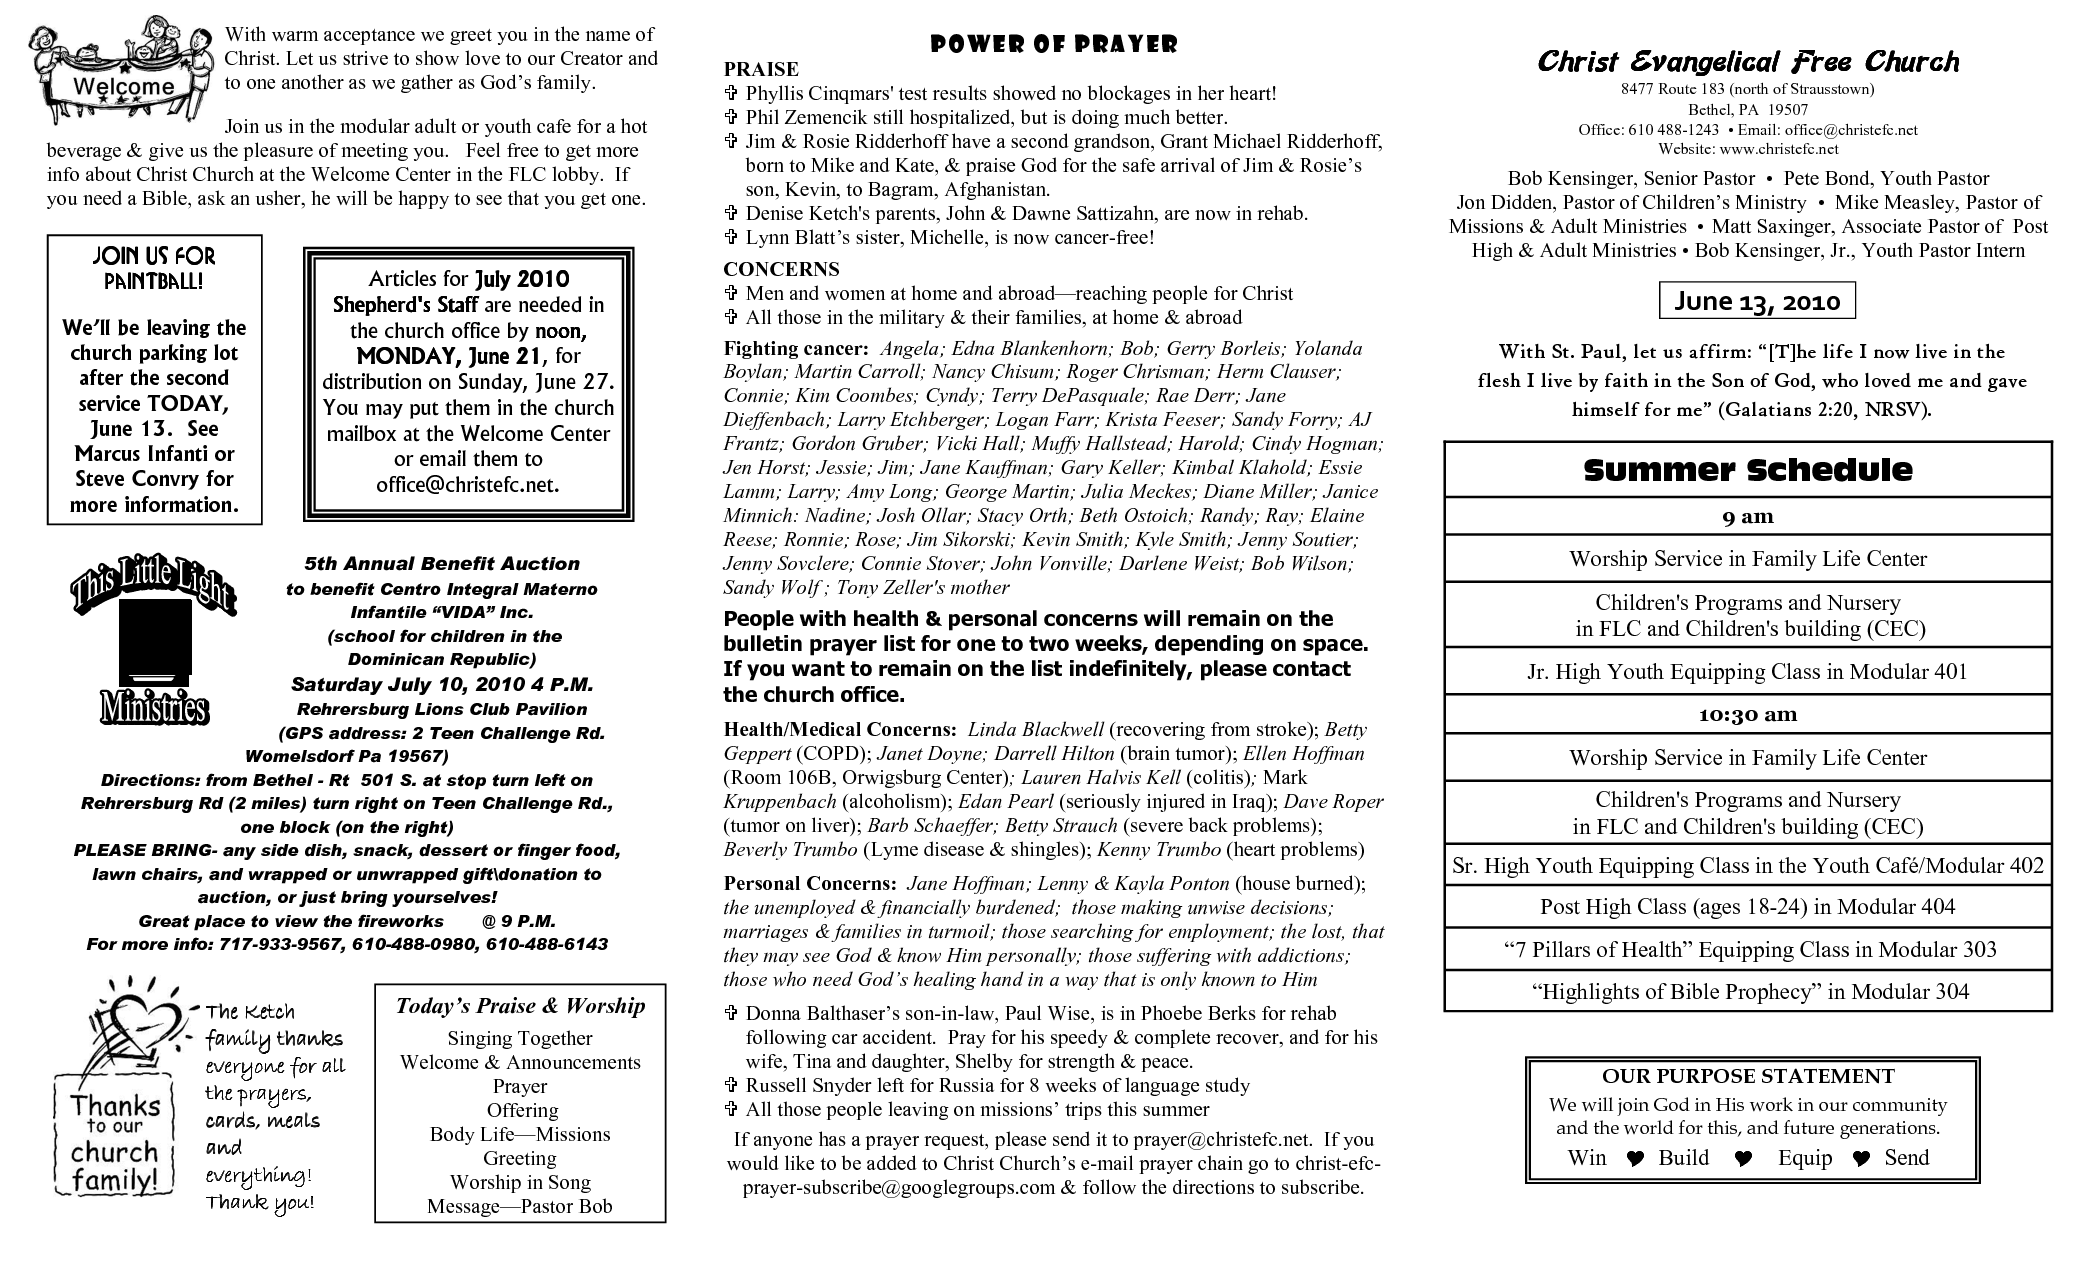 free templates for church bulletins - 8 best images of church bulletin templates free printable